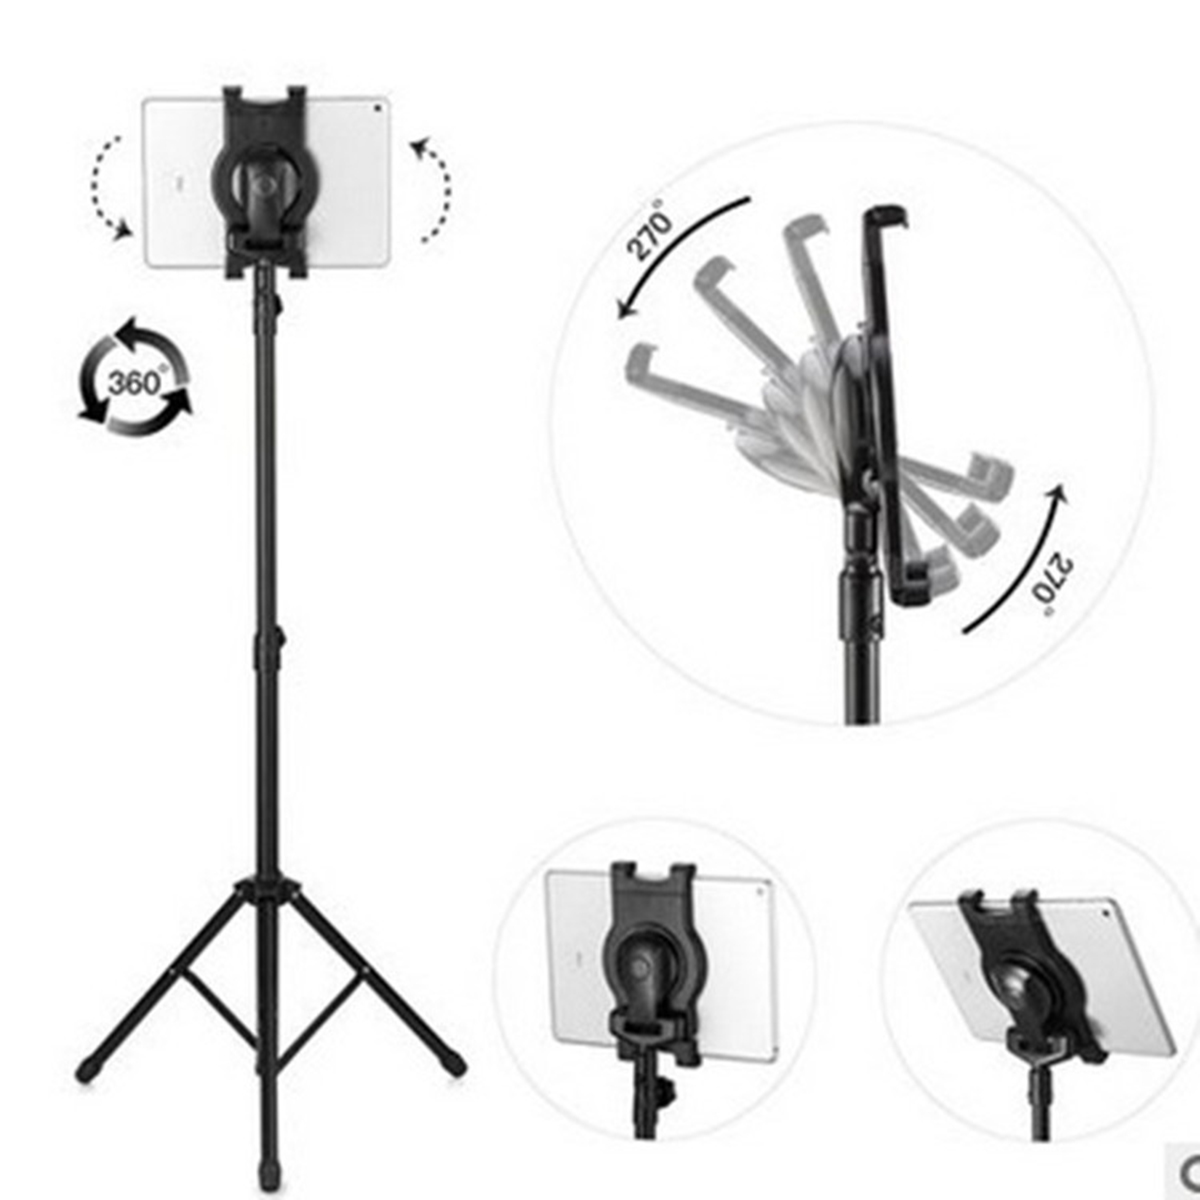 Tablet Tripod Universal Tripods Stand Adjustable Height Mount Holder With Tablet Clip And Holder Rod For 7-10 Inch Tablets